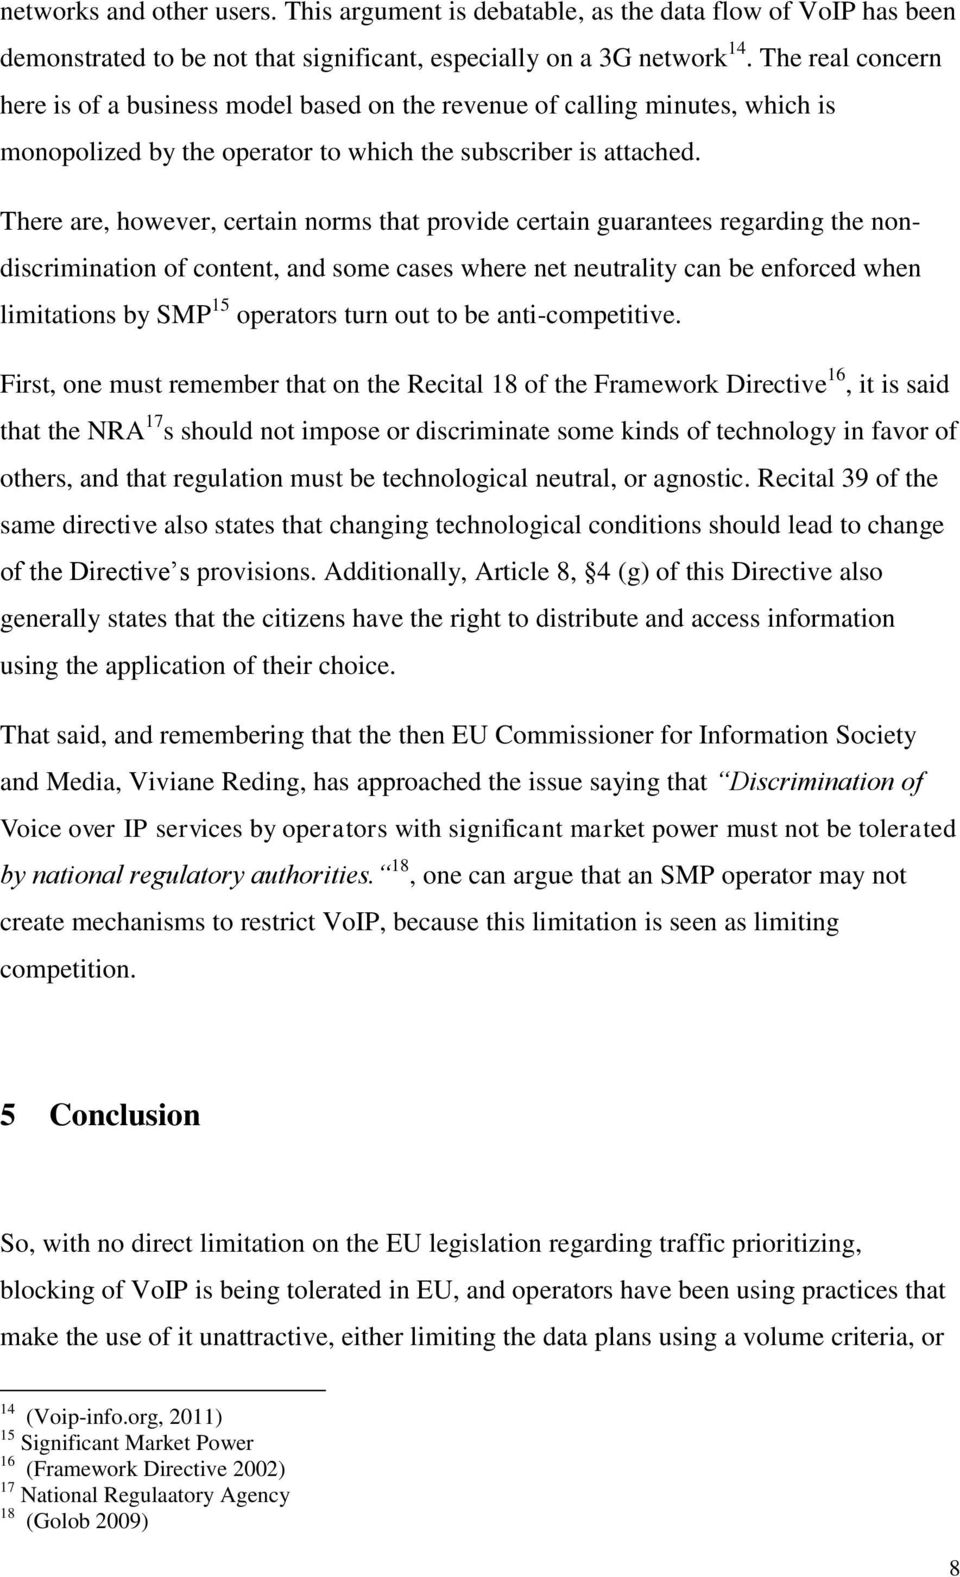 There are, however, certain norms that provide certain guarantees regarding the nondiscrimination of content, and some cases where net neutrality can be enforced when limitations by SMP 15 operators